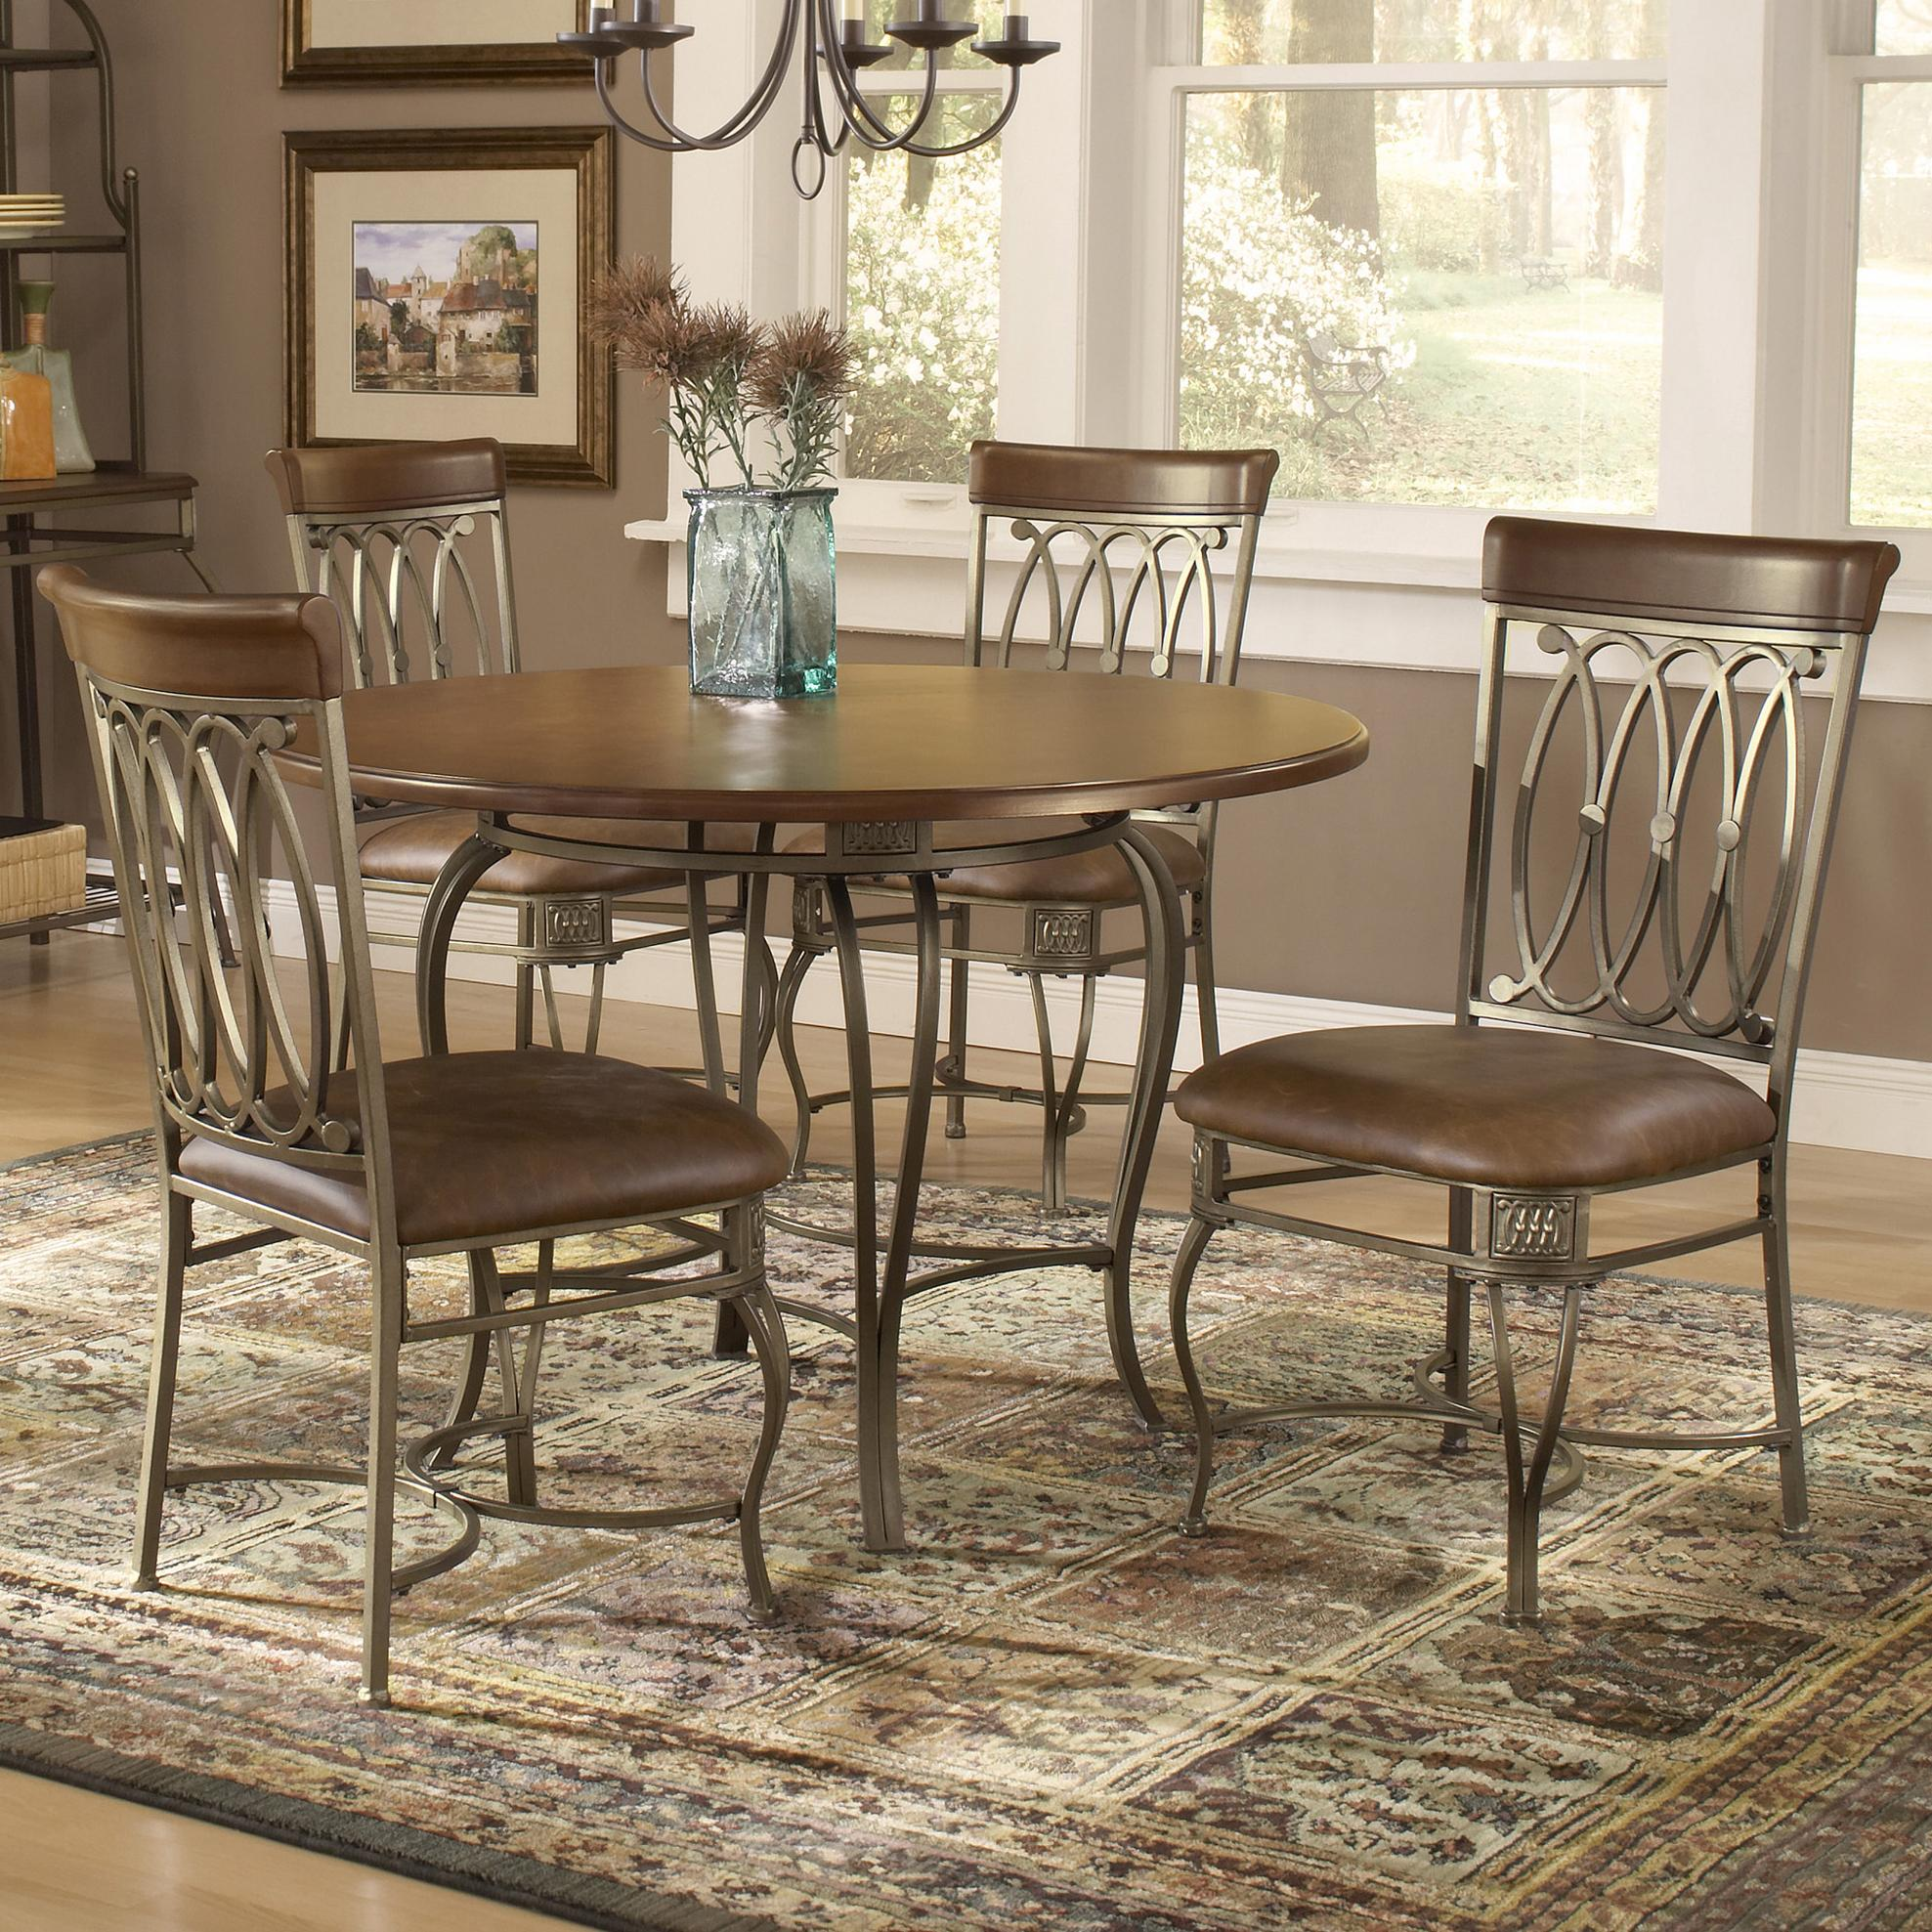 Hillsdale Montello Five Piece Dining Set - Item Number: 41541DTBC45